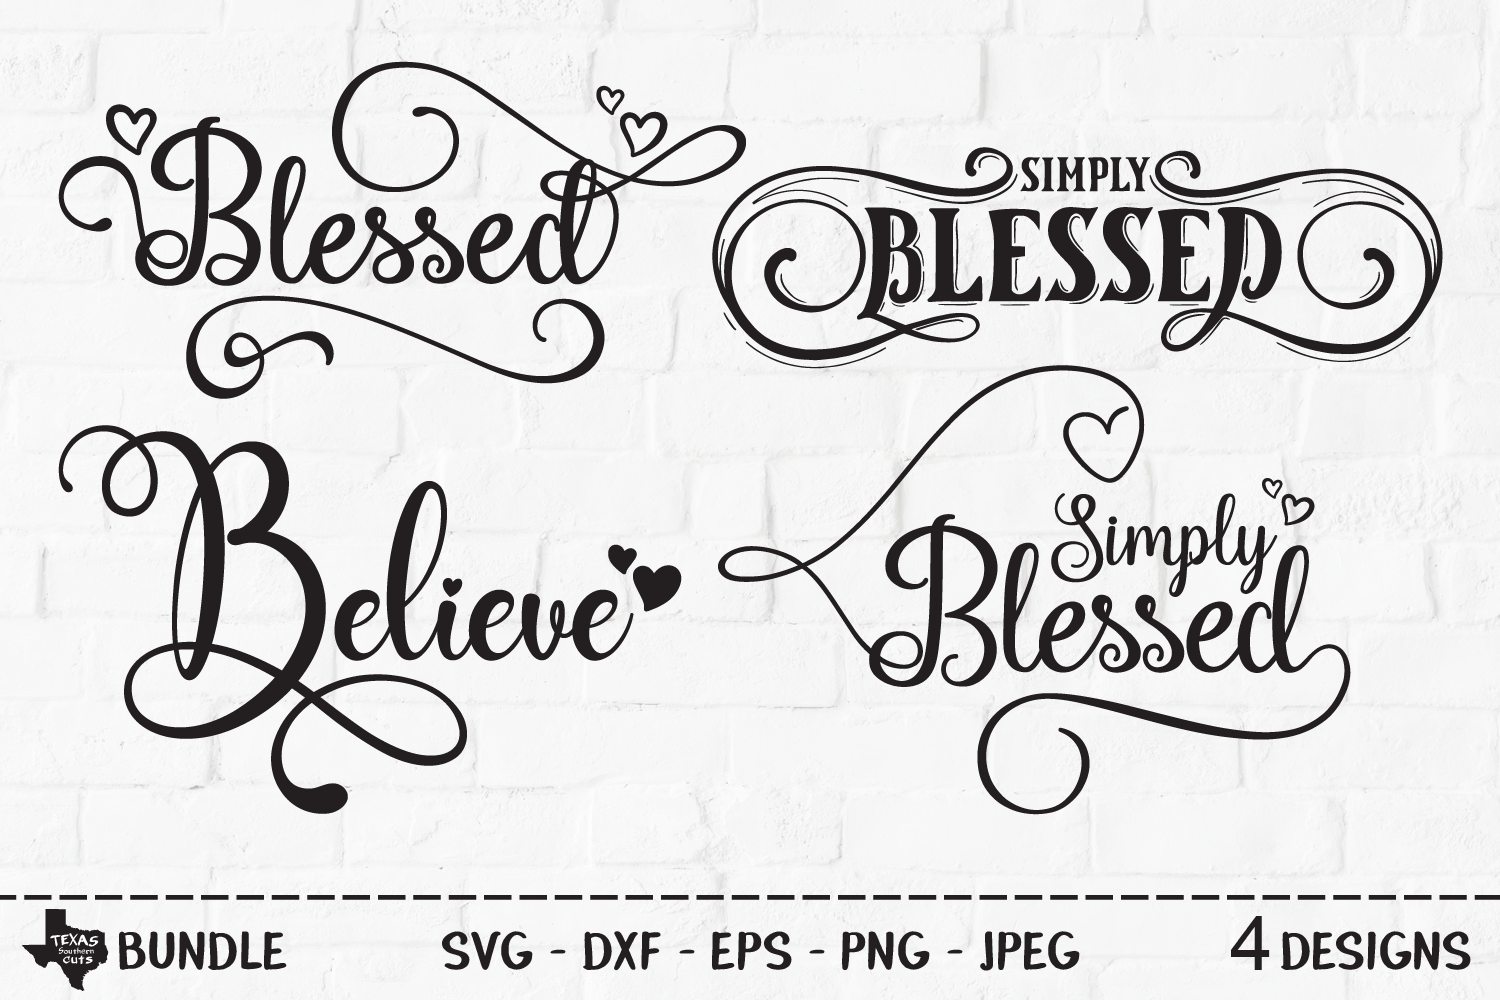 Download Free Blessed Bundle Christian Shirt Designs Graphic By for Cricut Explore, Silhouette and other cutting machines.